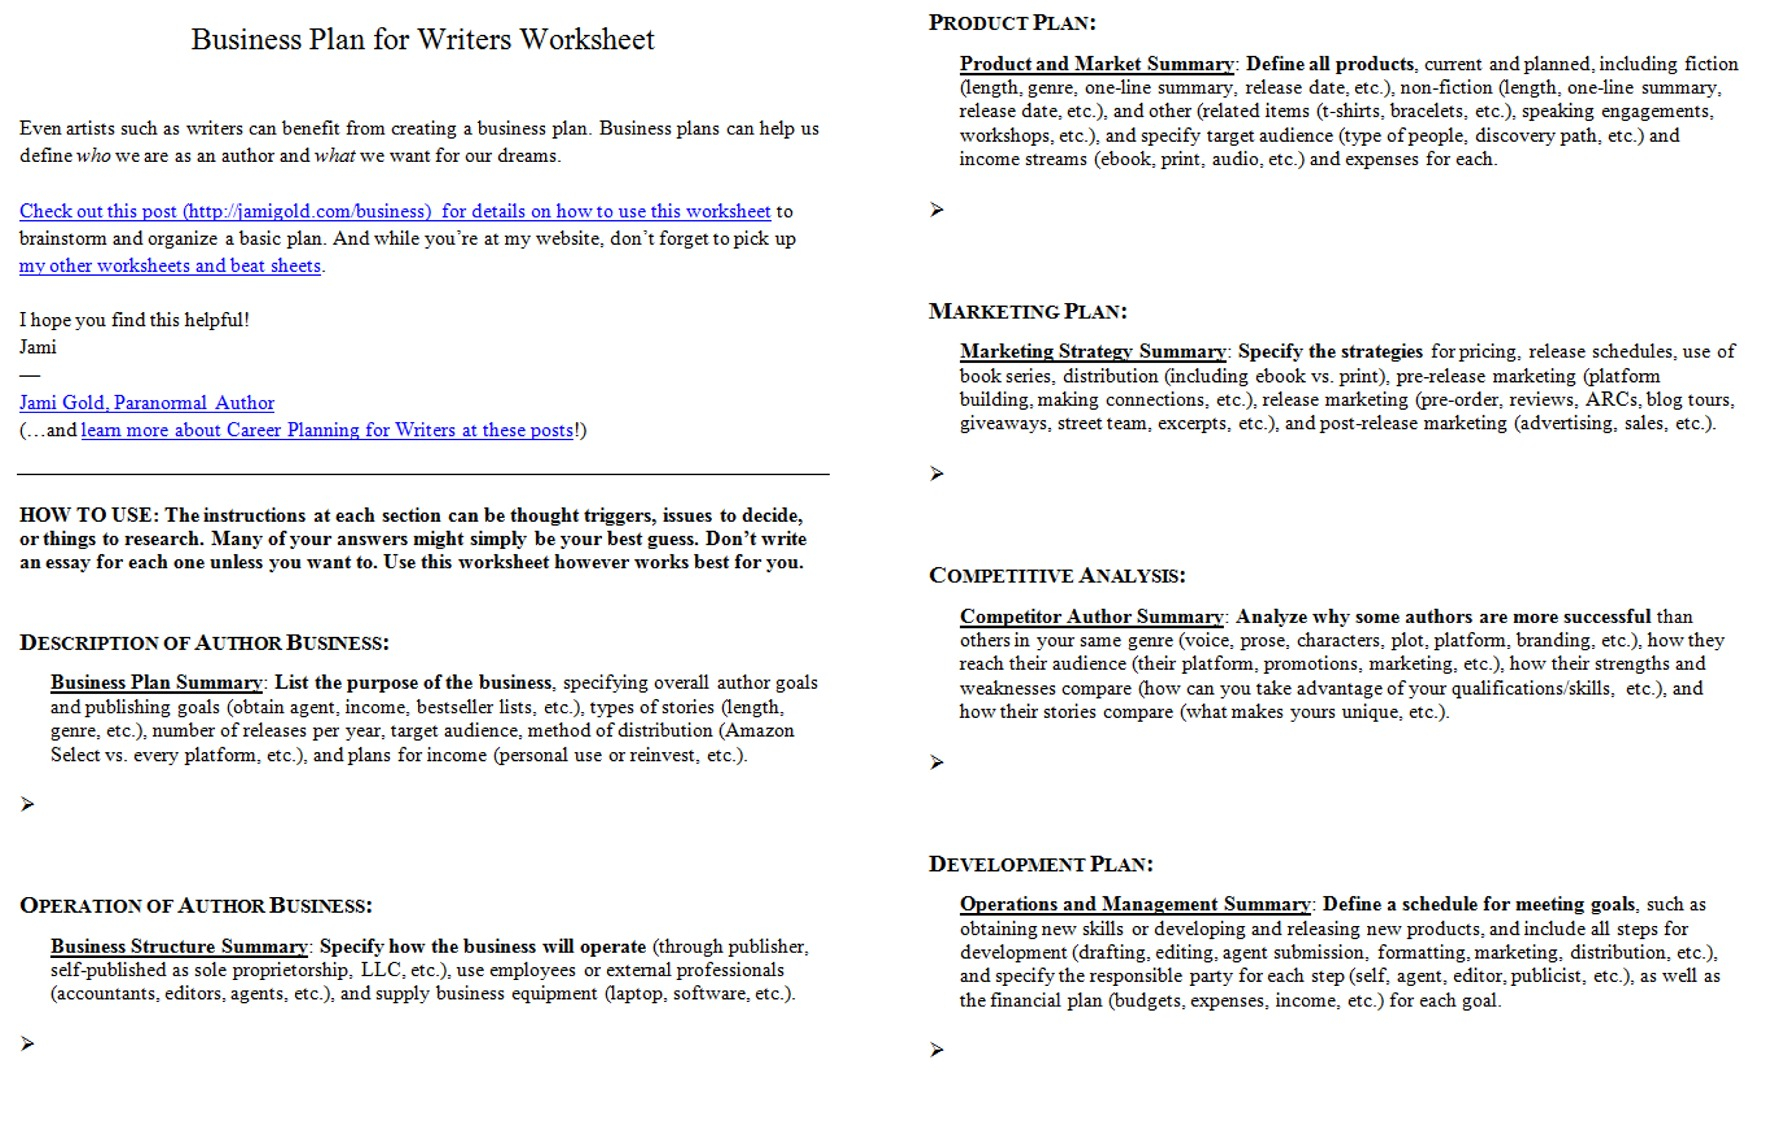 Aldiablosus  Marvellous Worksheets For Writers  Jami Gold Paranormal Author With Magnificent Screen Shot Of Both Pages Of The Business Plan For Writers Worksheet With Astonishing Adding And Subtraction Worksheets Also Language Grammar Worksheets In Addition Free Printable Math Worksheets For Th Grade And Density Worksheet  Answers As Well As Investing Math Worksheet Additionally Sheep Heart Dissection Worksheet From Jamigoldcom With Aldiablosus  Magnificent Worksheets For Writers  Jami Gold Paranormal Author With Astonishing Screen Shot Of Both Pages Of The Business Plan For Writers Worksheet And Marvellous Adding And Subtraction Worksheets Also Language Grammar Worksheets In Addition Free Printable Math Worksheets For Th Grade From Jamigoldcom